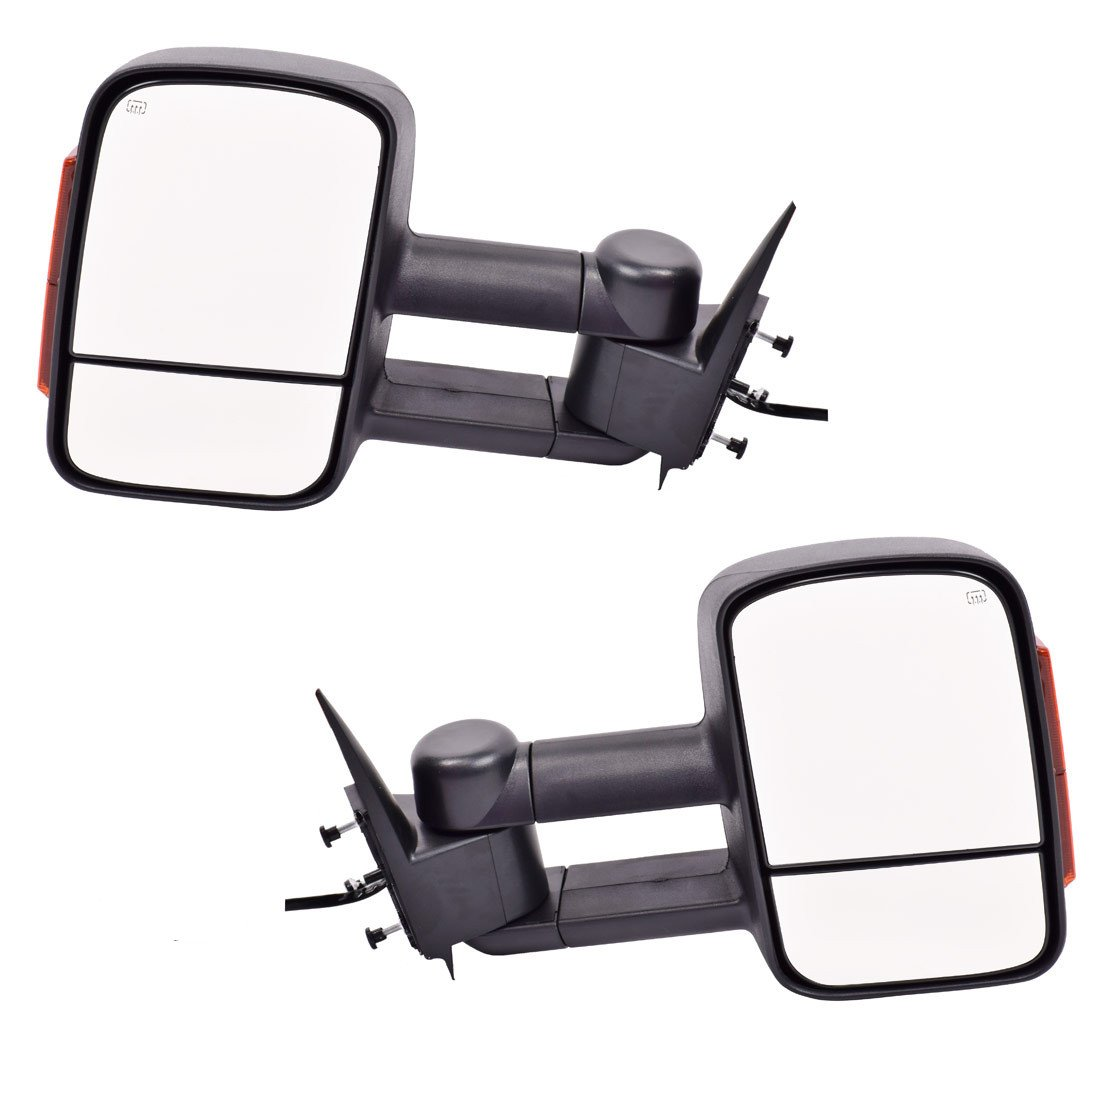 Dedc Tow Mirrors For Silverado 1500 2003 Chevy Mirror Wiring Diagram 2500 Towing Power Heated With Signal Lights Foldable Pair 2006